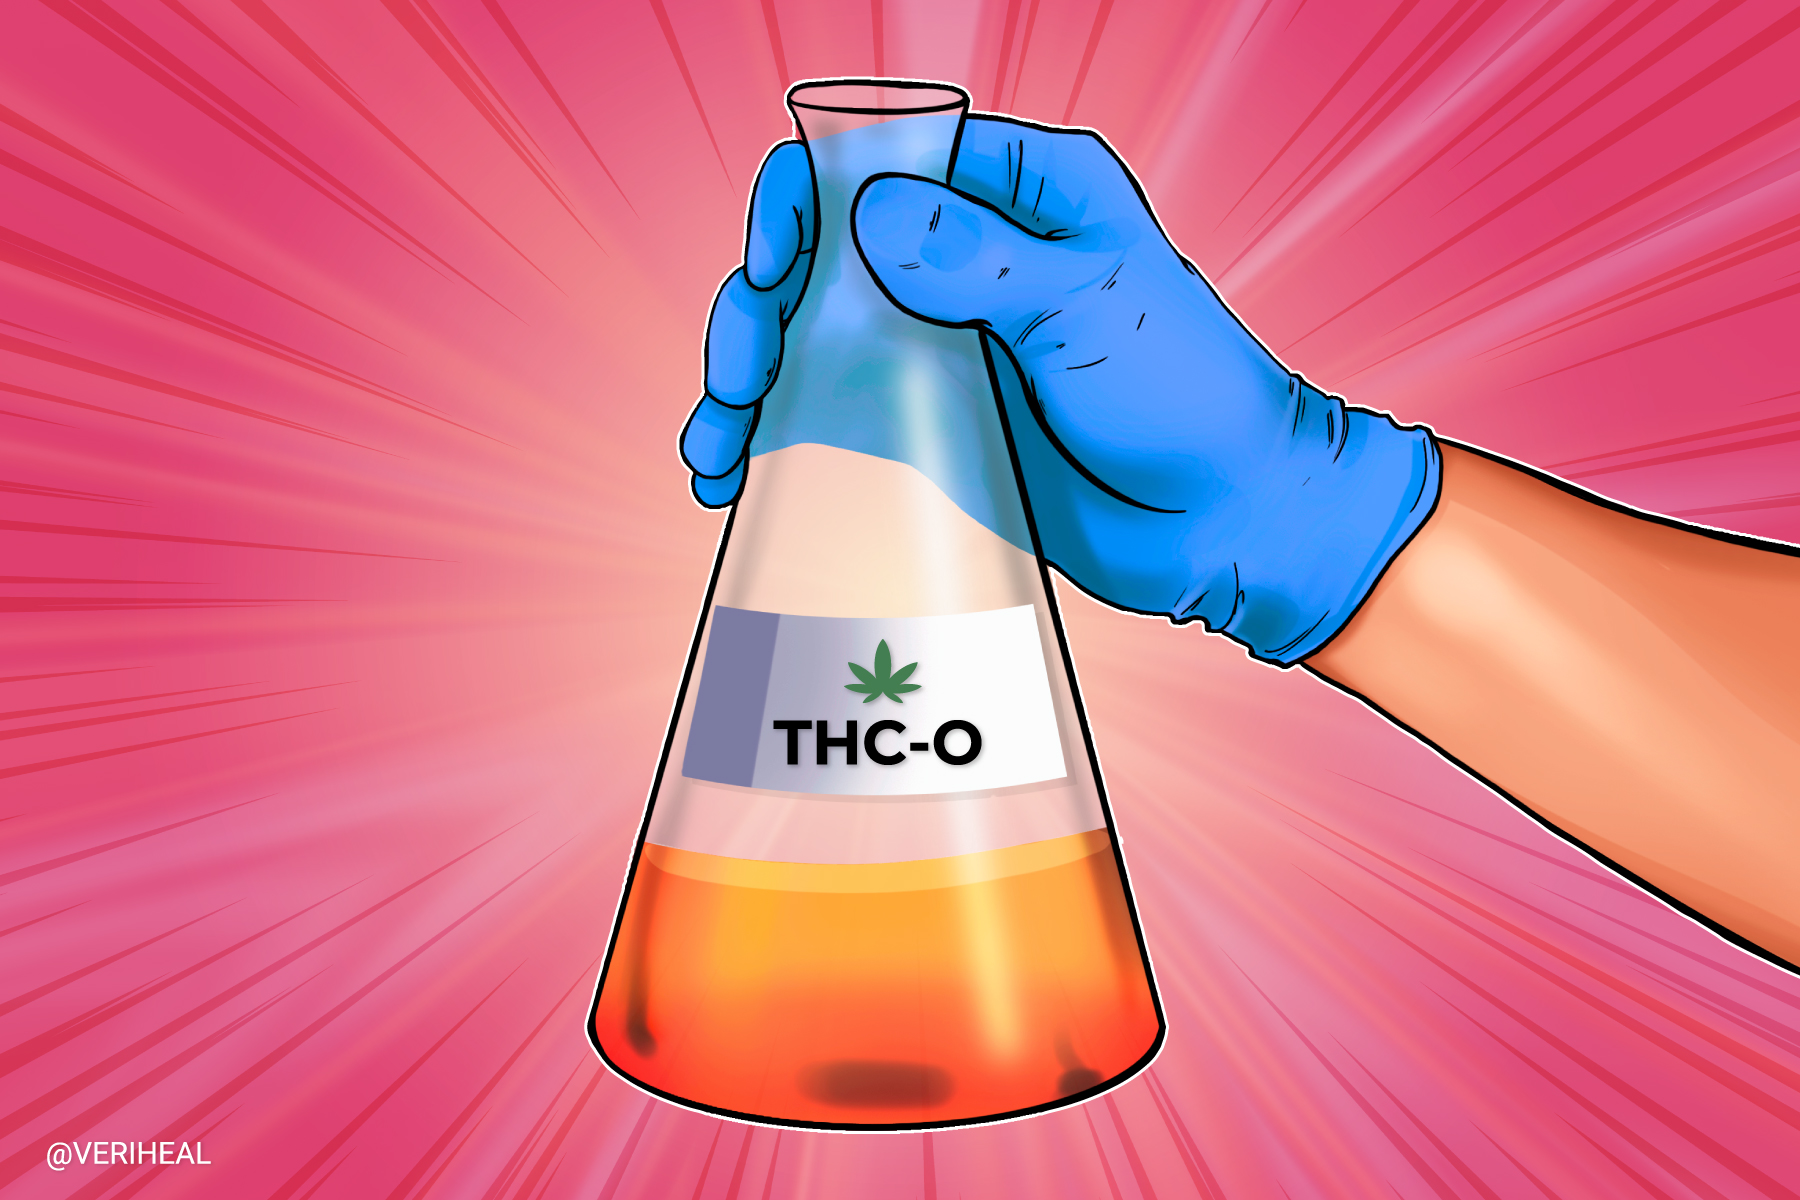 What You Should Know Before Considering Giving THC-O a Go